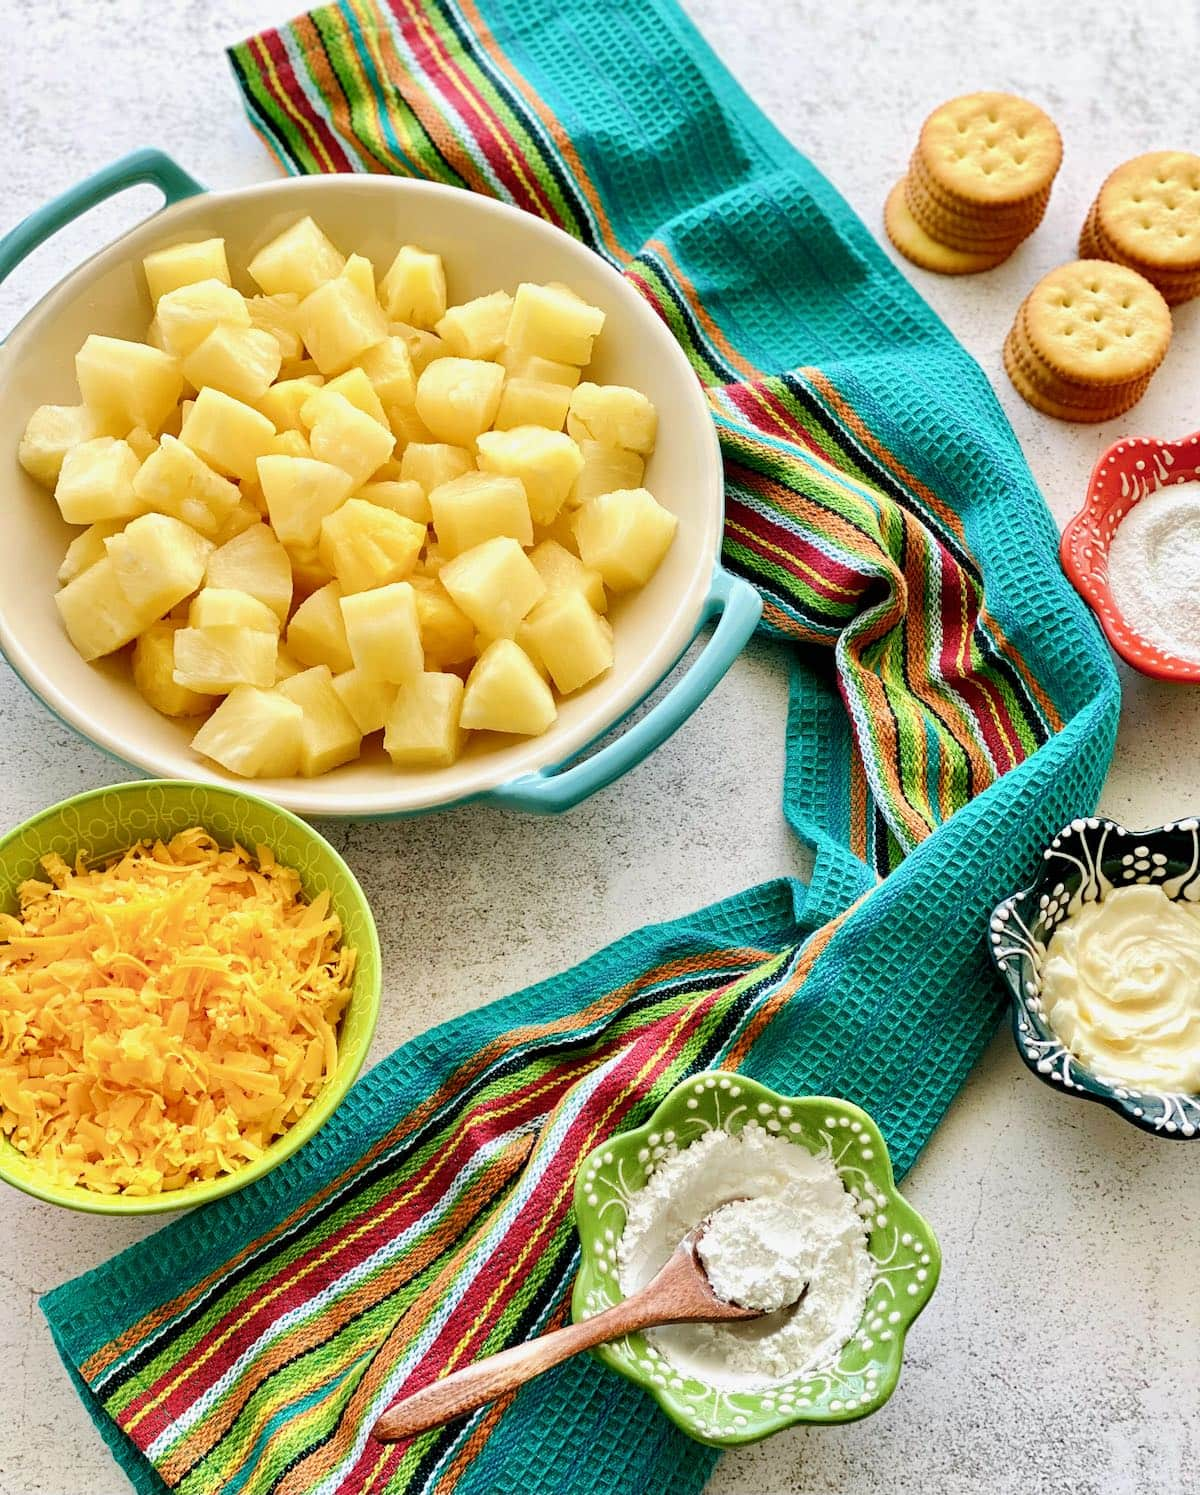 ingredients needed for pineapple casserole.